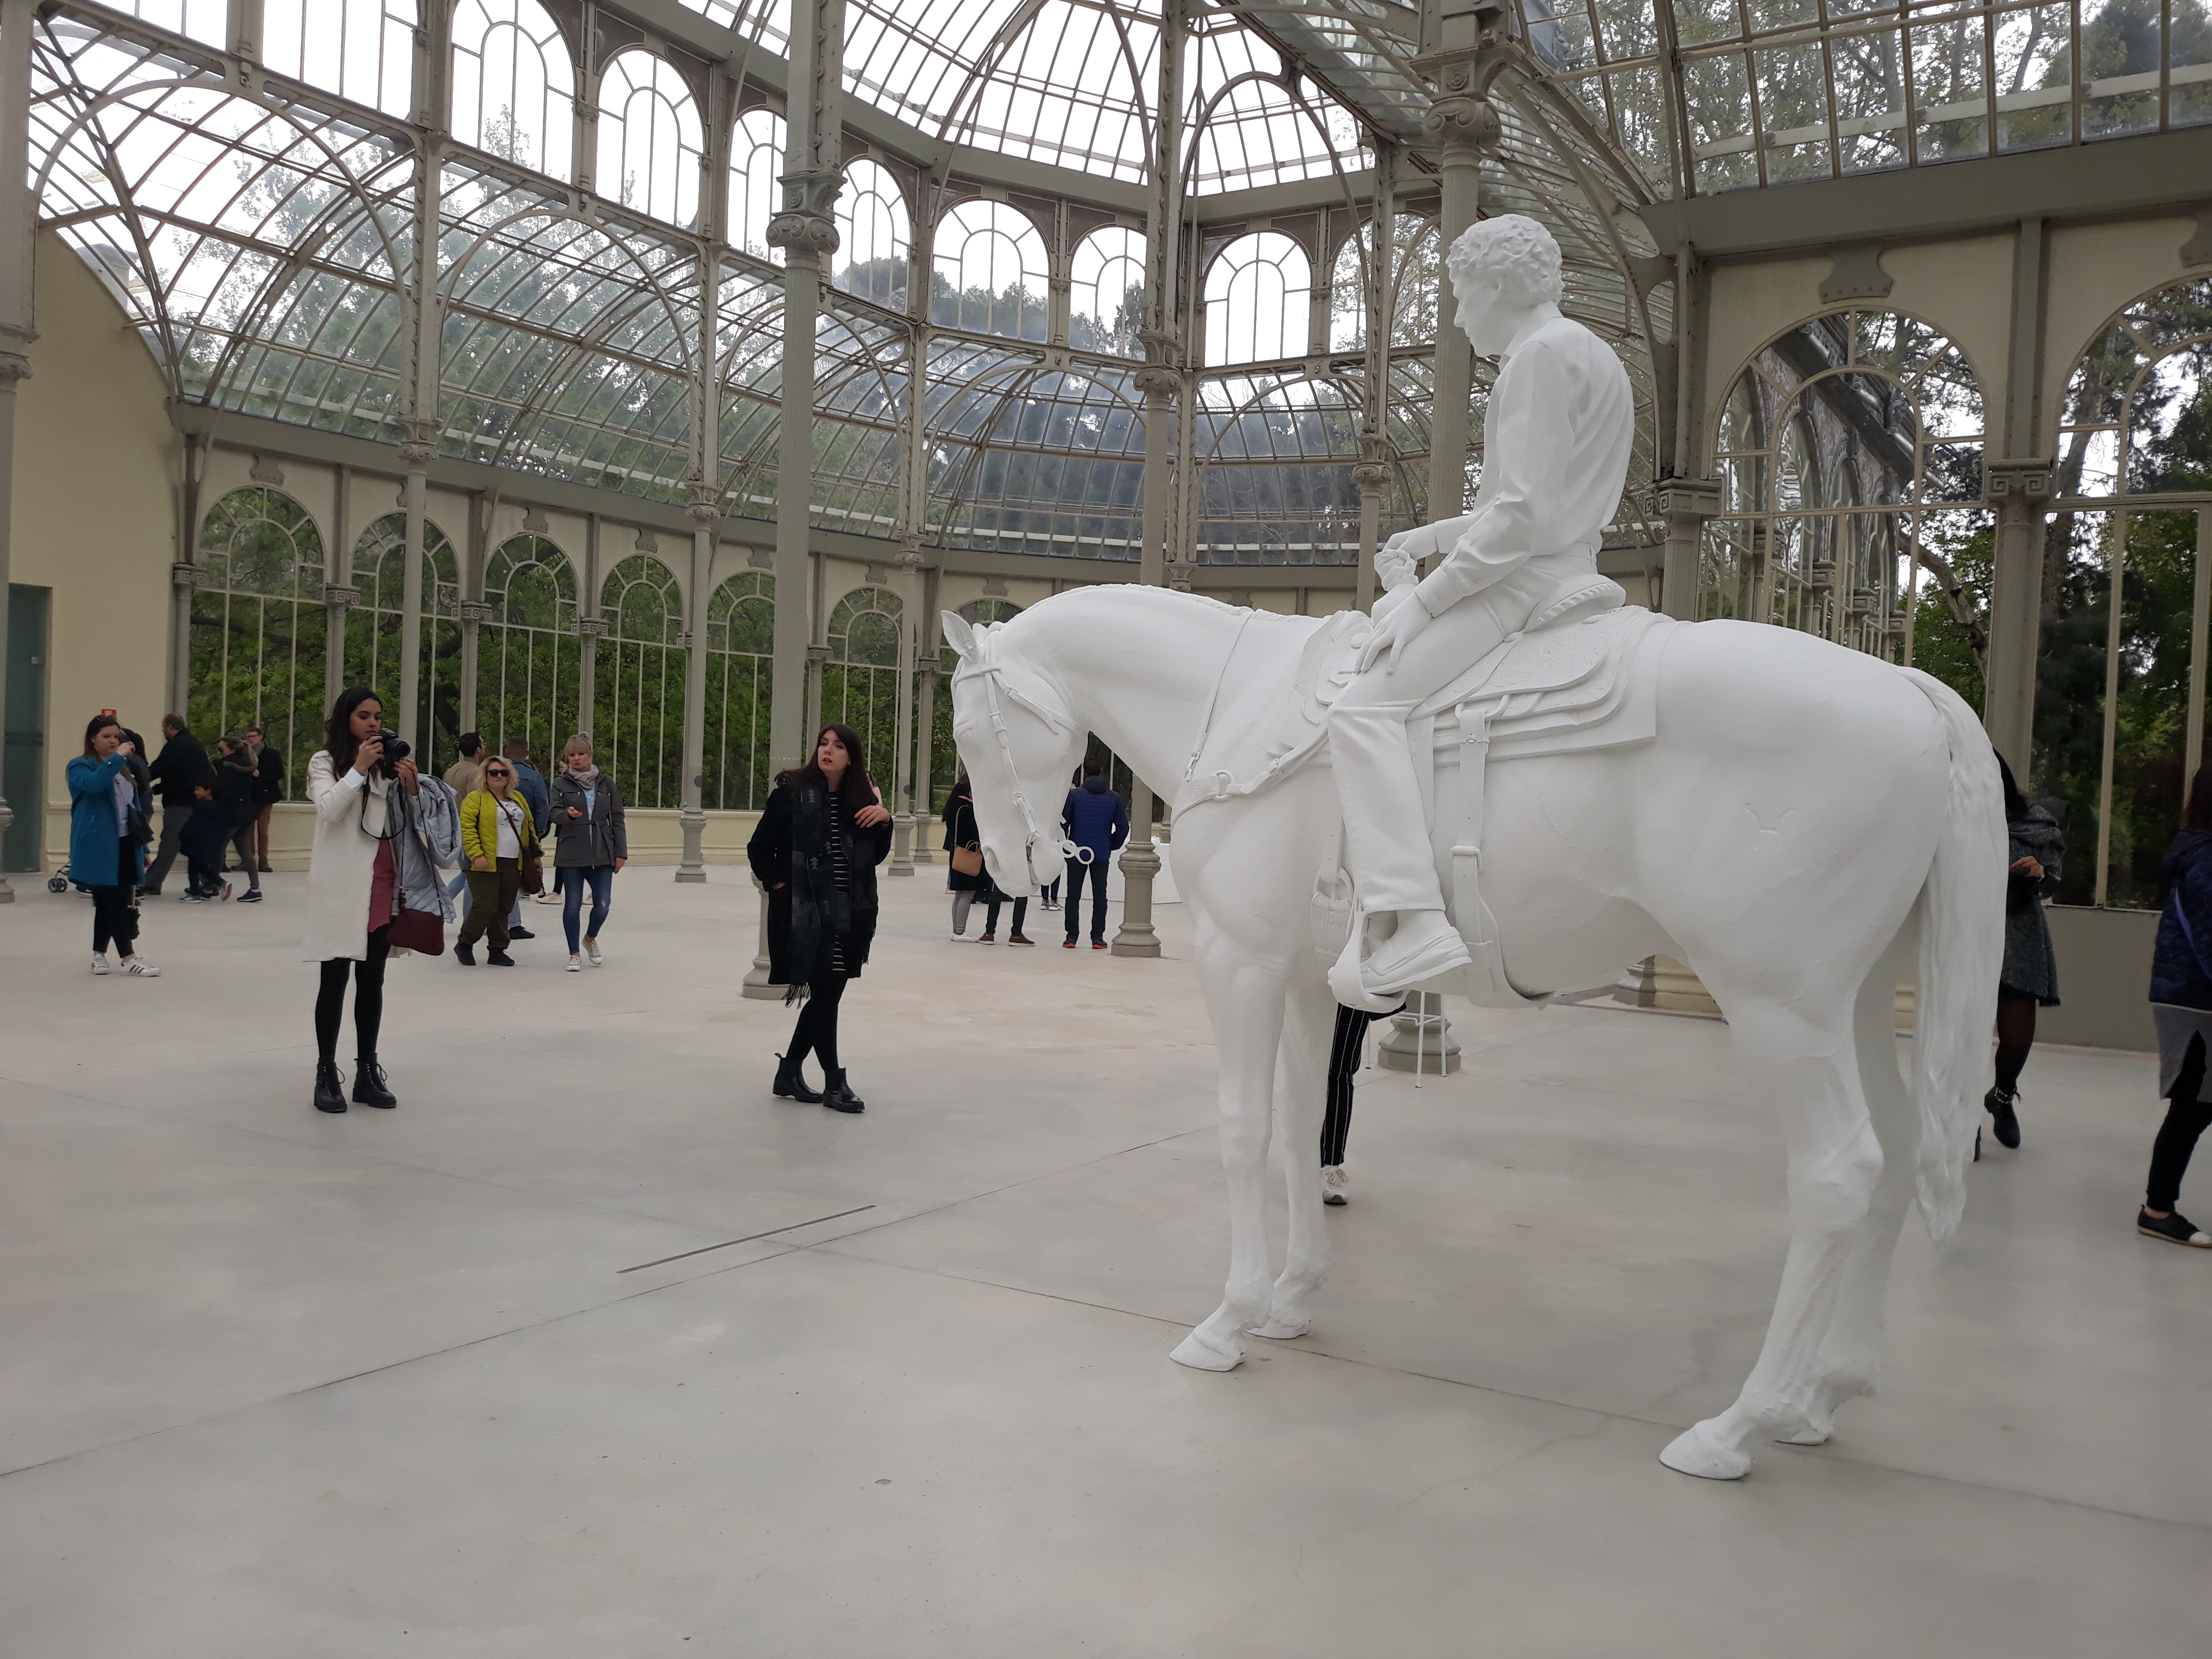 White sculpture of horse and man sitting on it